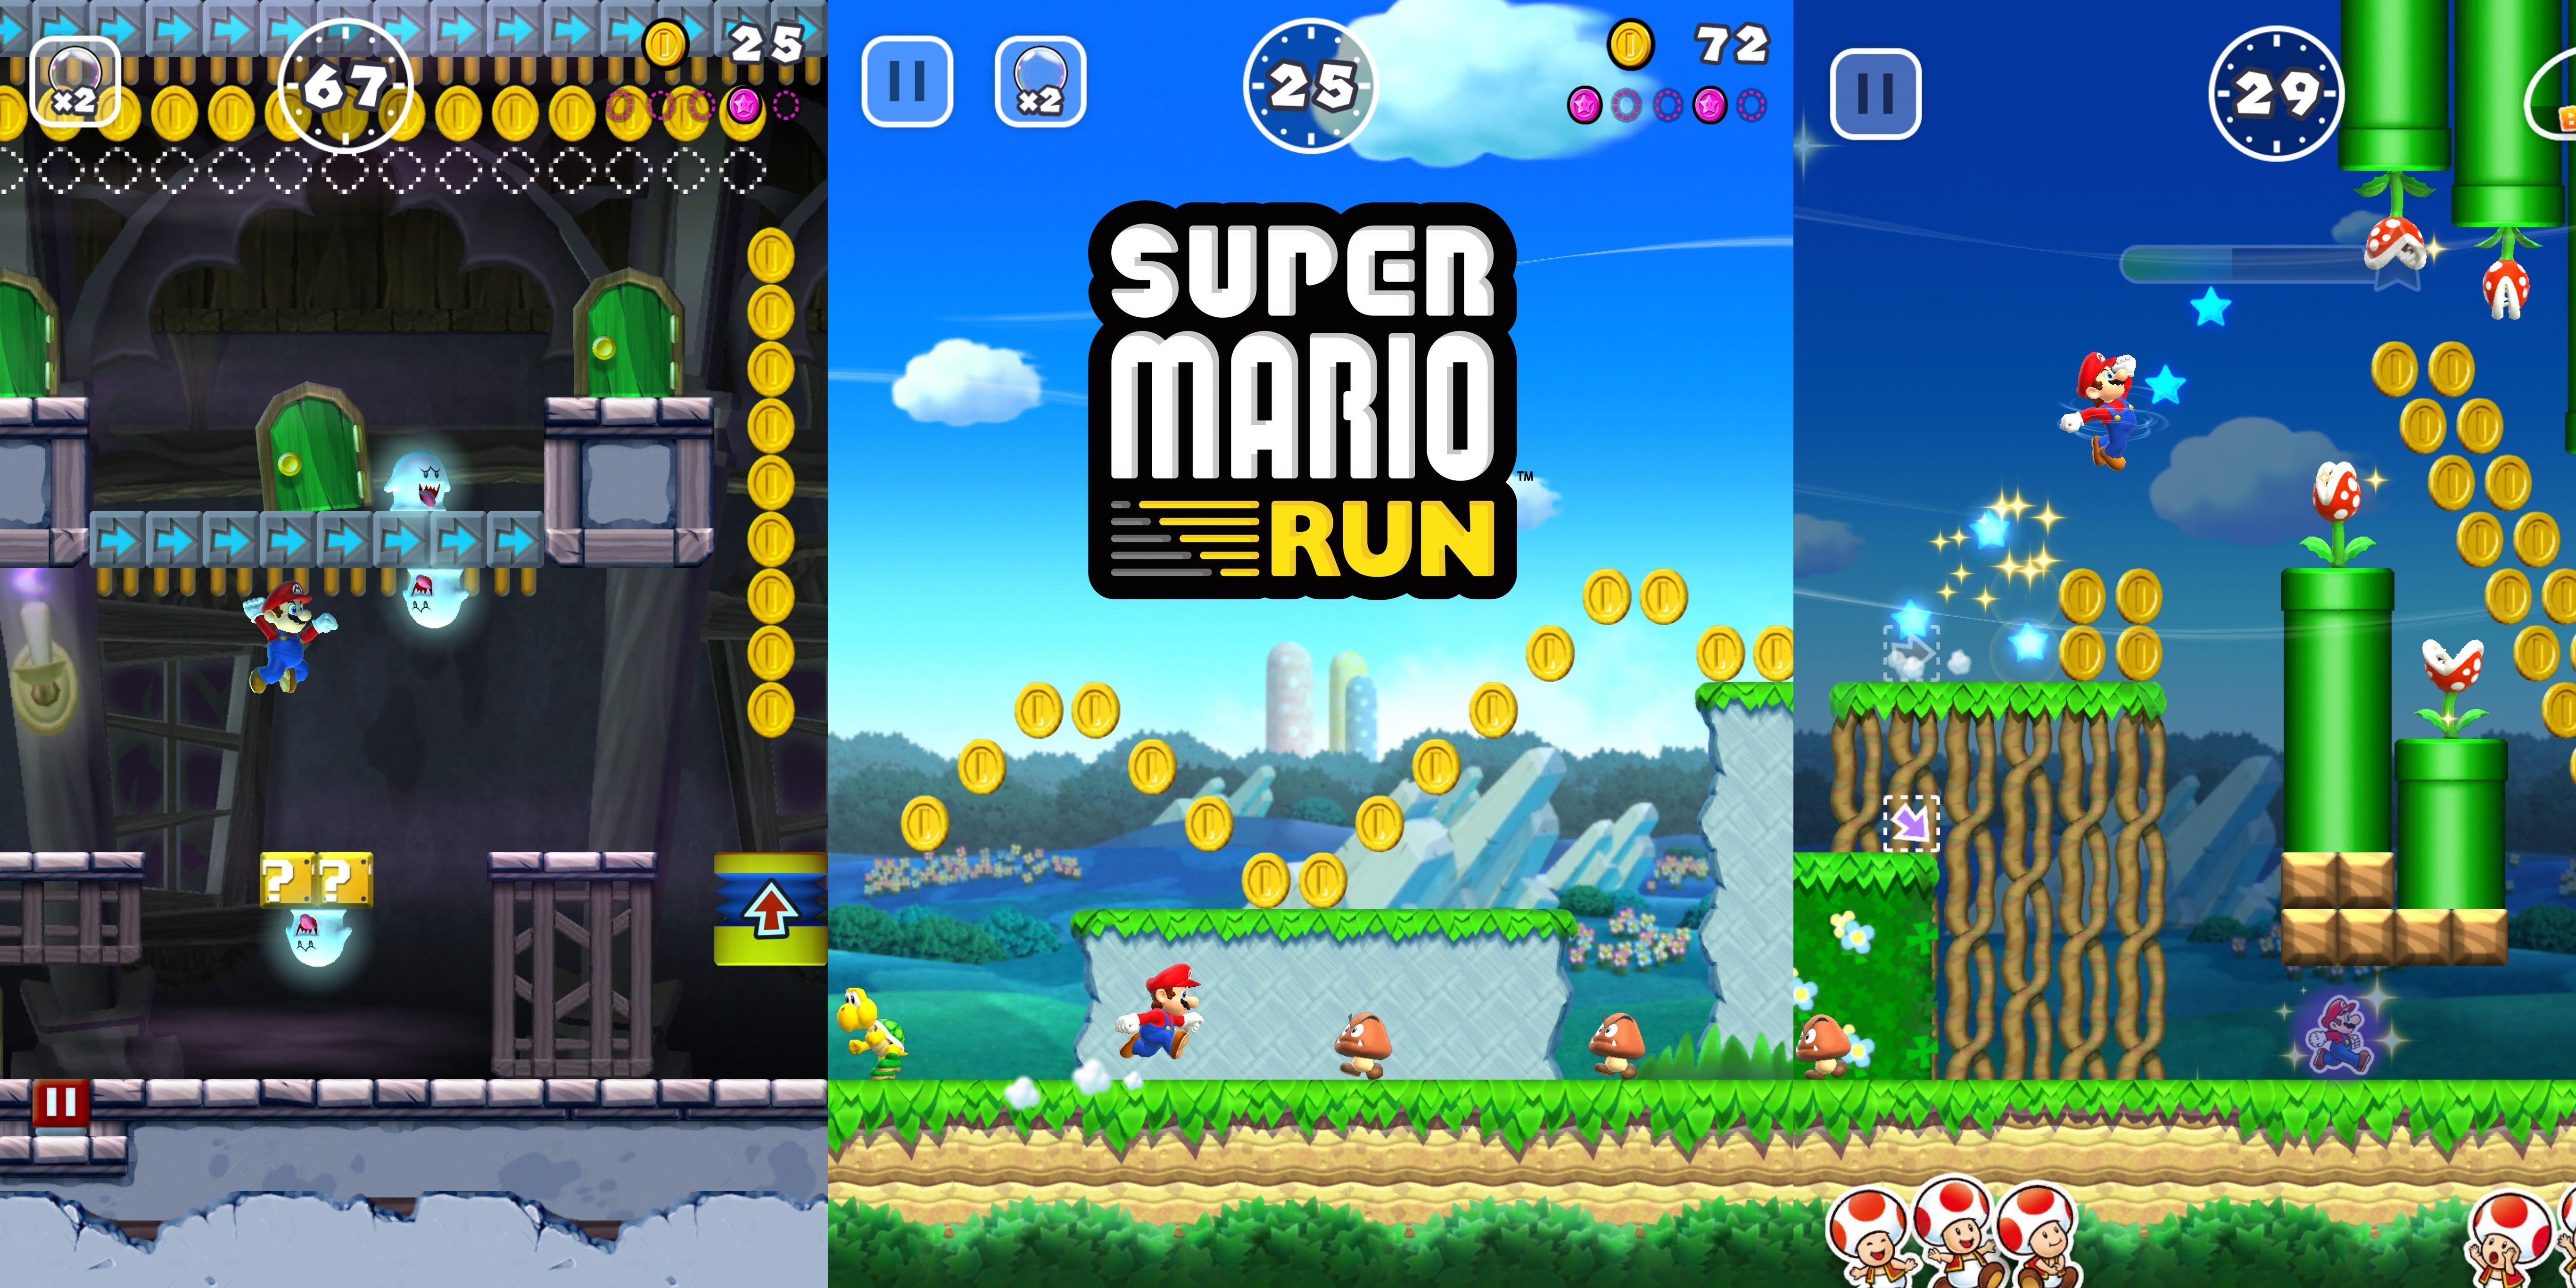 "<span href=""https://9to5mac.com/2016/12/15/super-mario-run-free-download-game-iphone-ipad/"">Super Mario Ejecutar ahora está disponible en la App Store para iPhone y iPad, de descarga gratuita, con $9.99 compra in-app</a>"